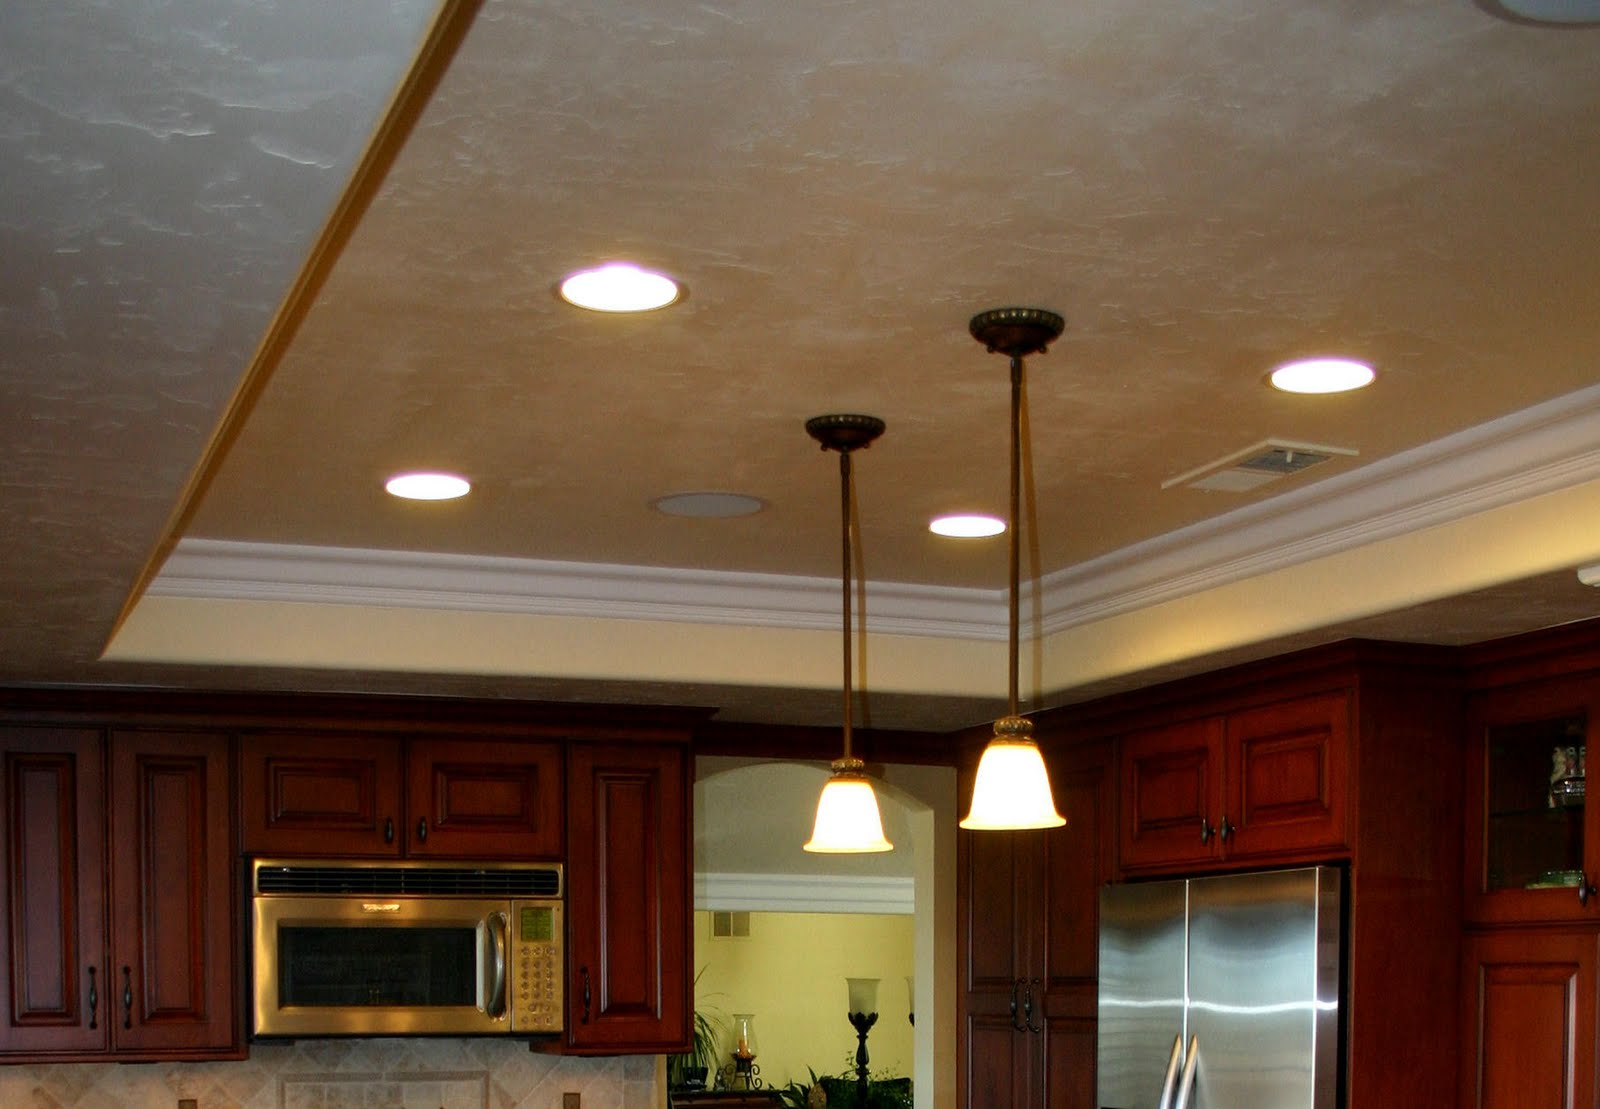 Reasons for installing drop down ceiling lights warisan lighting reasons for installing drop down ceiling lights mozeypictures Image collections